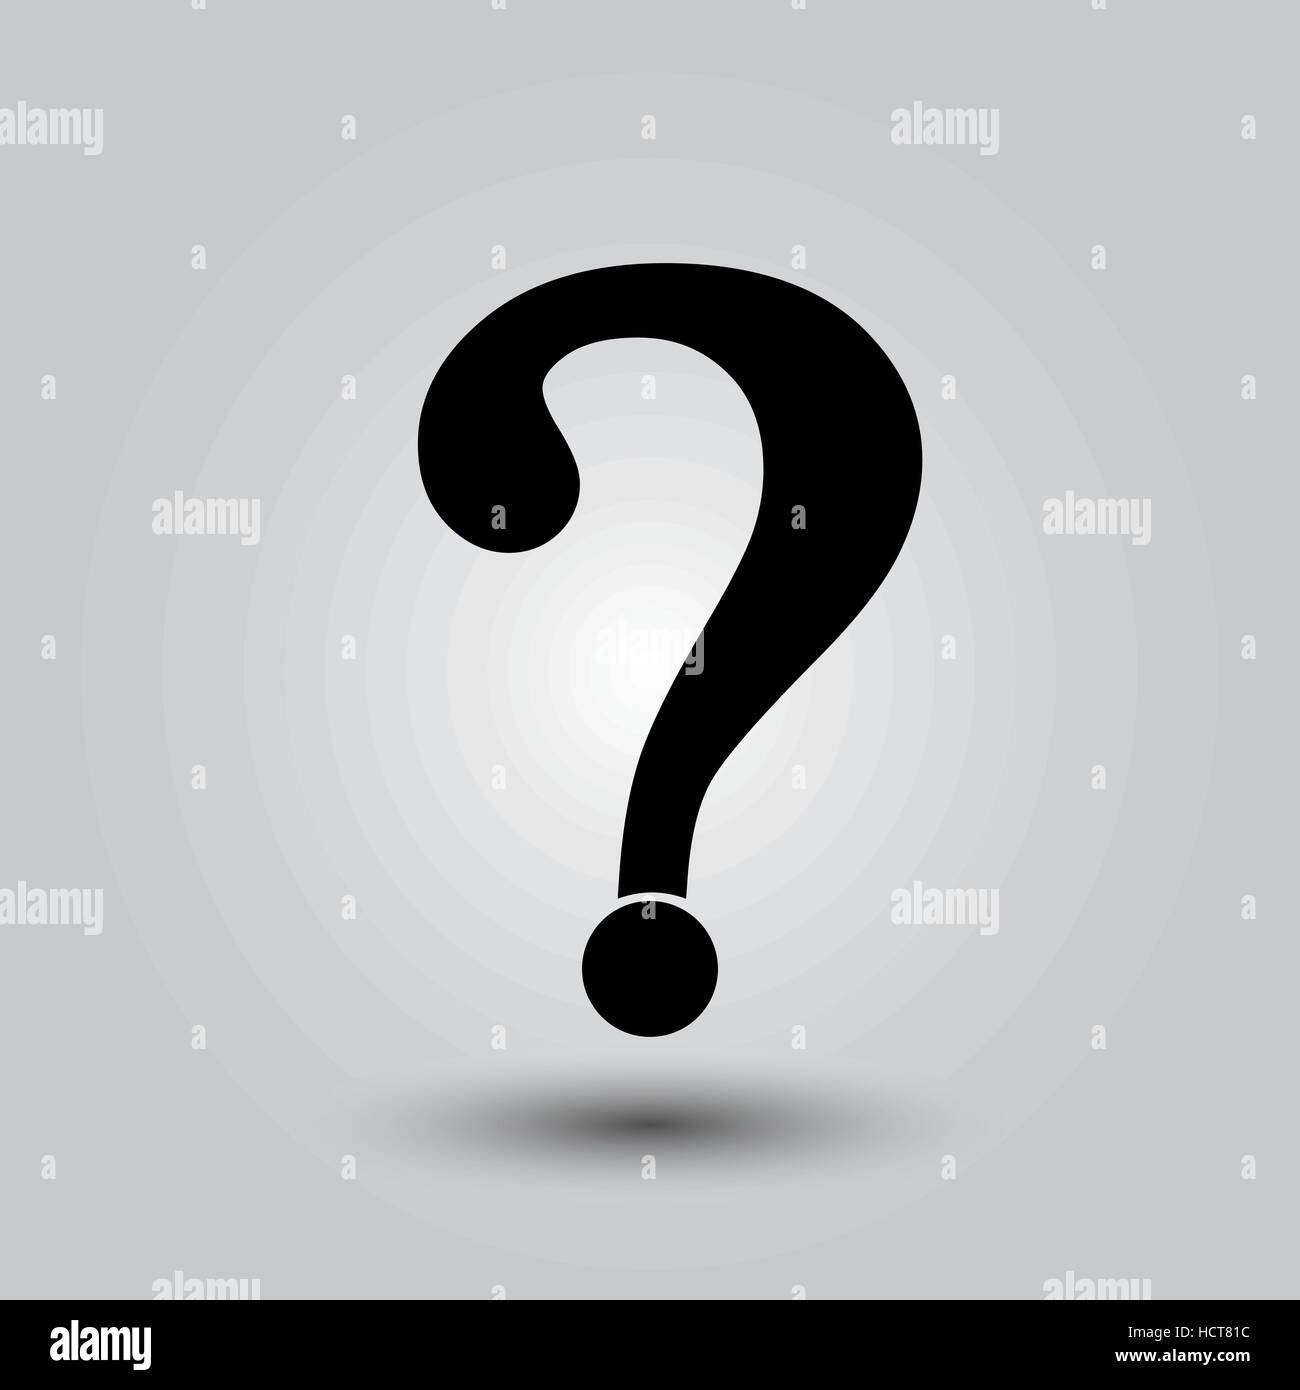 Question mark sign icon, vector illustration. Flat design style - Stock Image